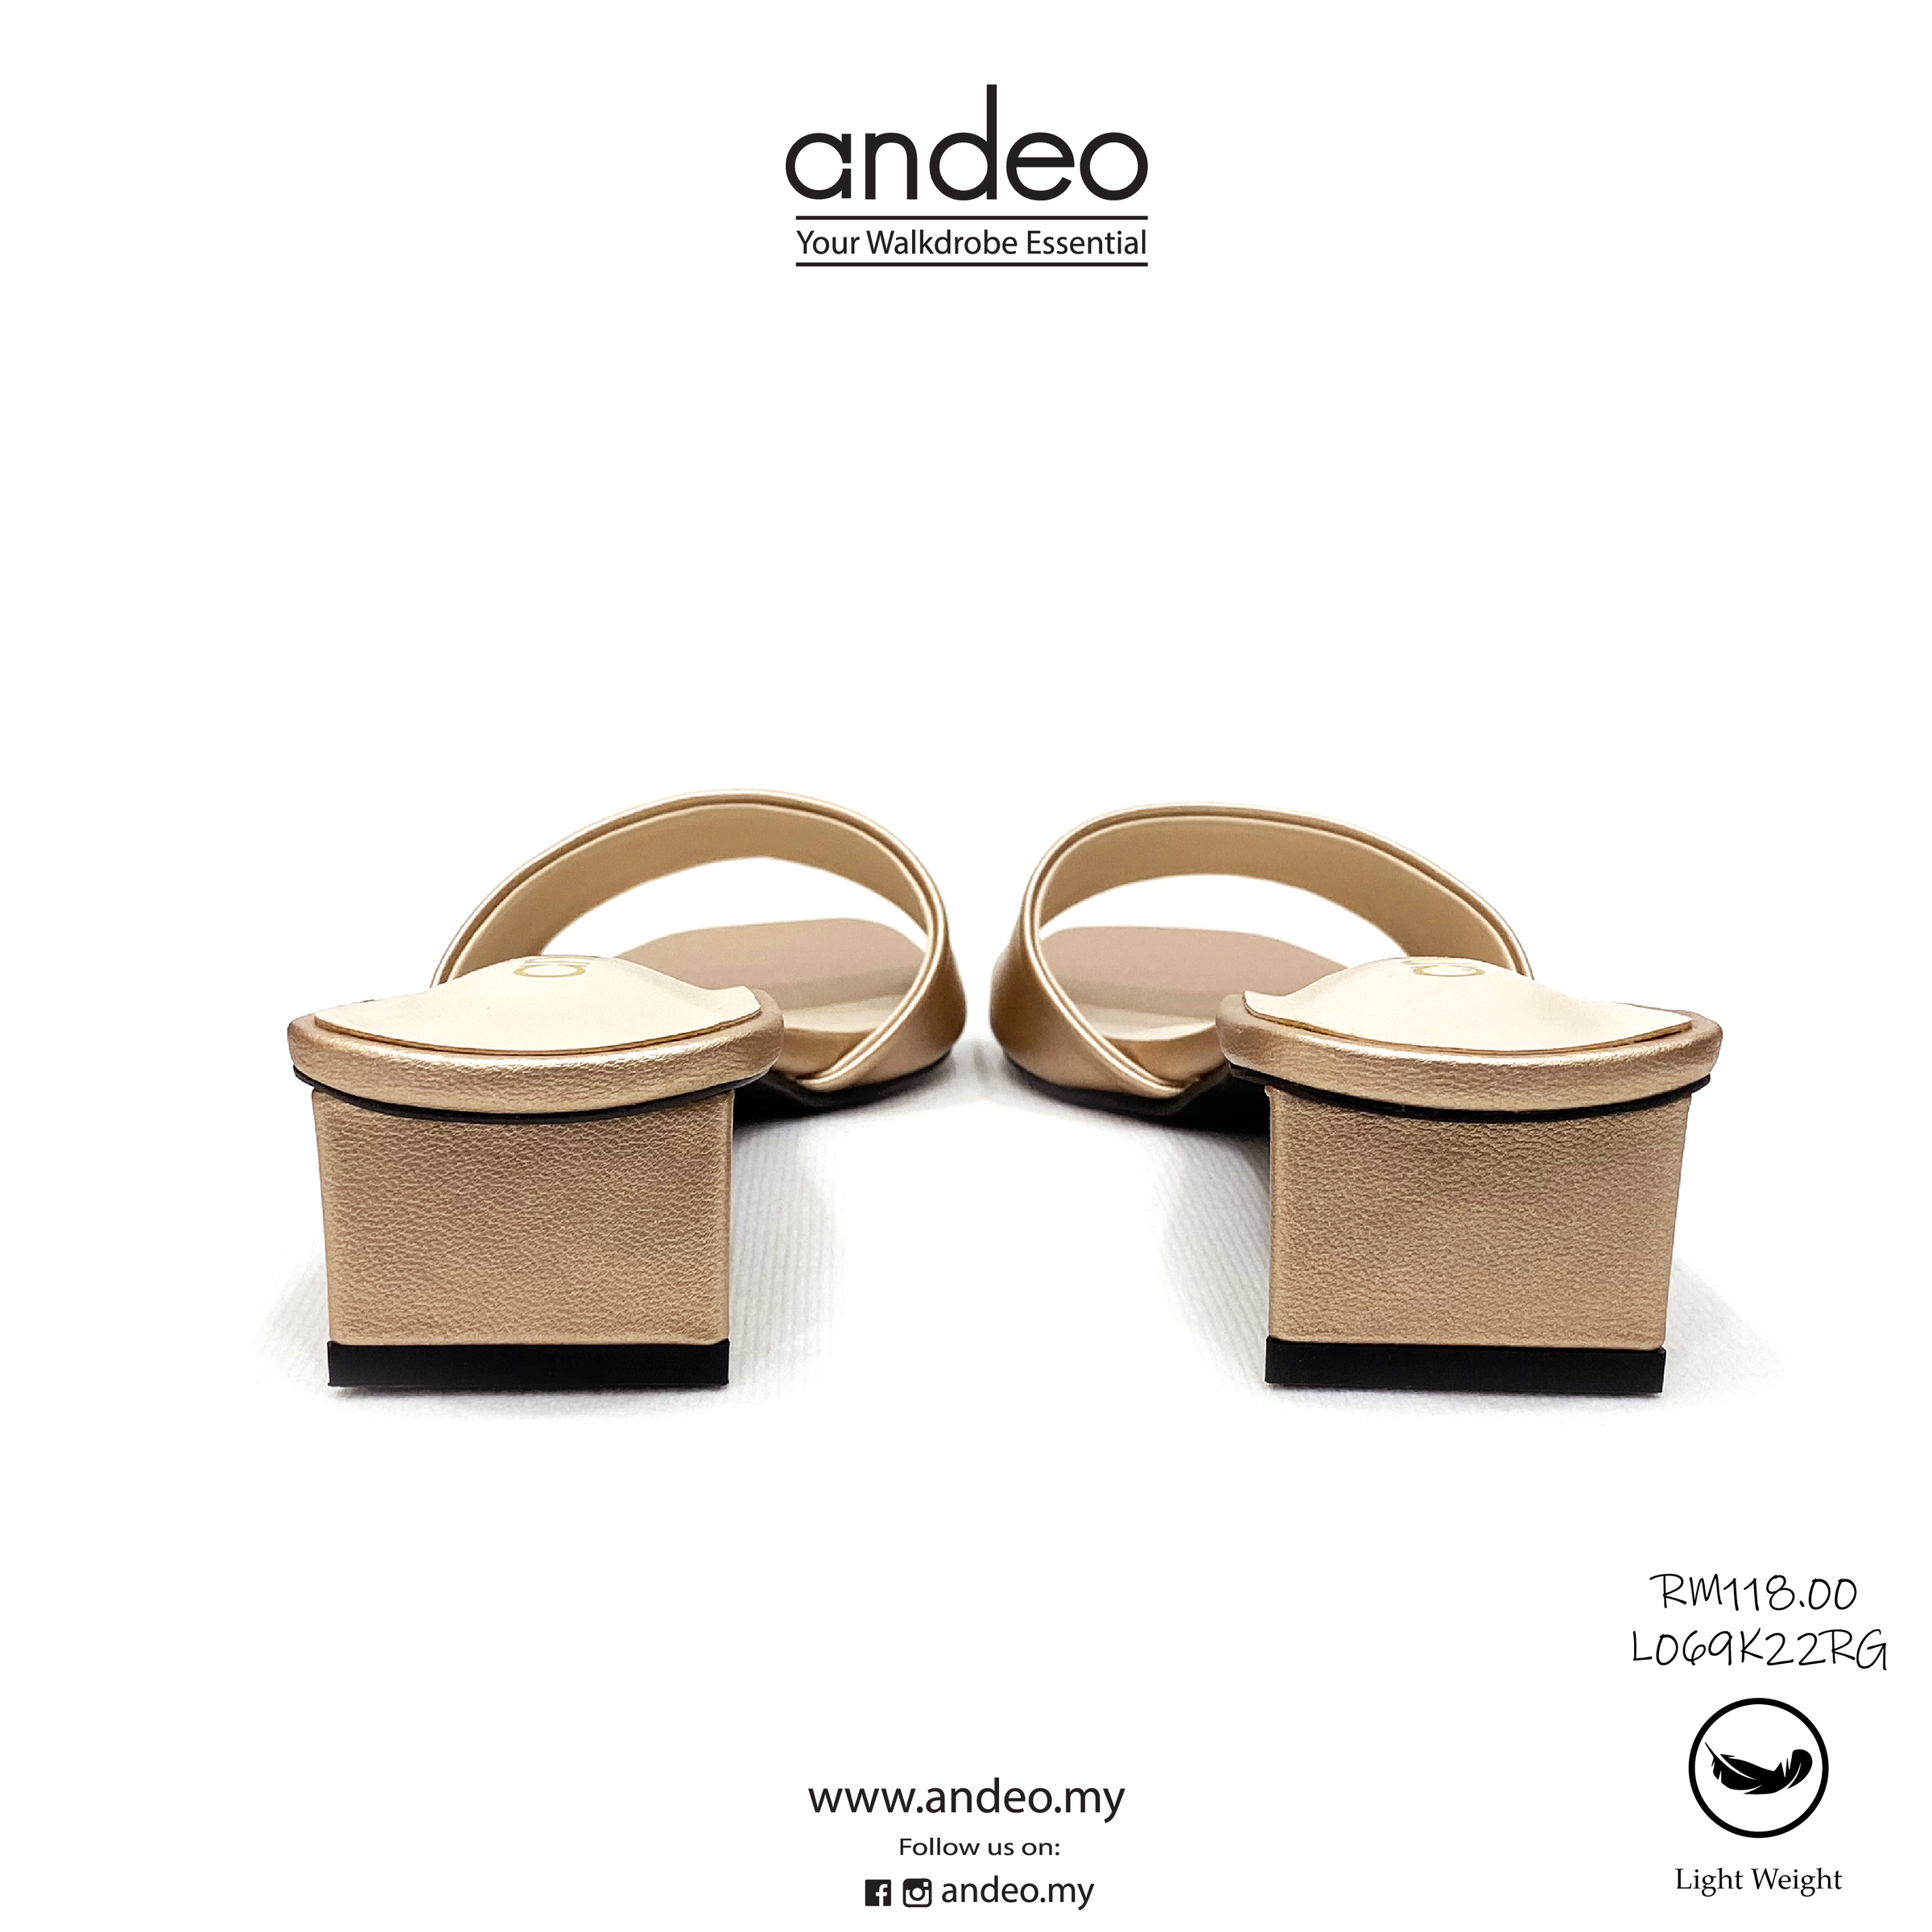 ANDEO FB PRODUCT L069K22-13.png